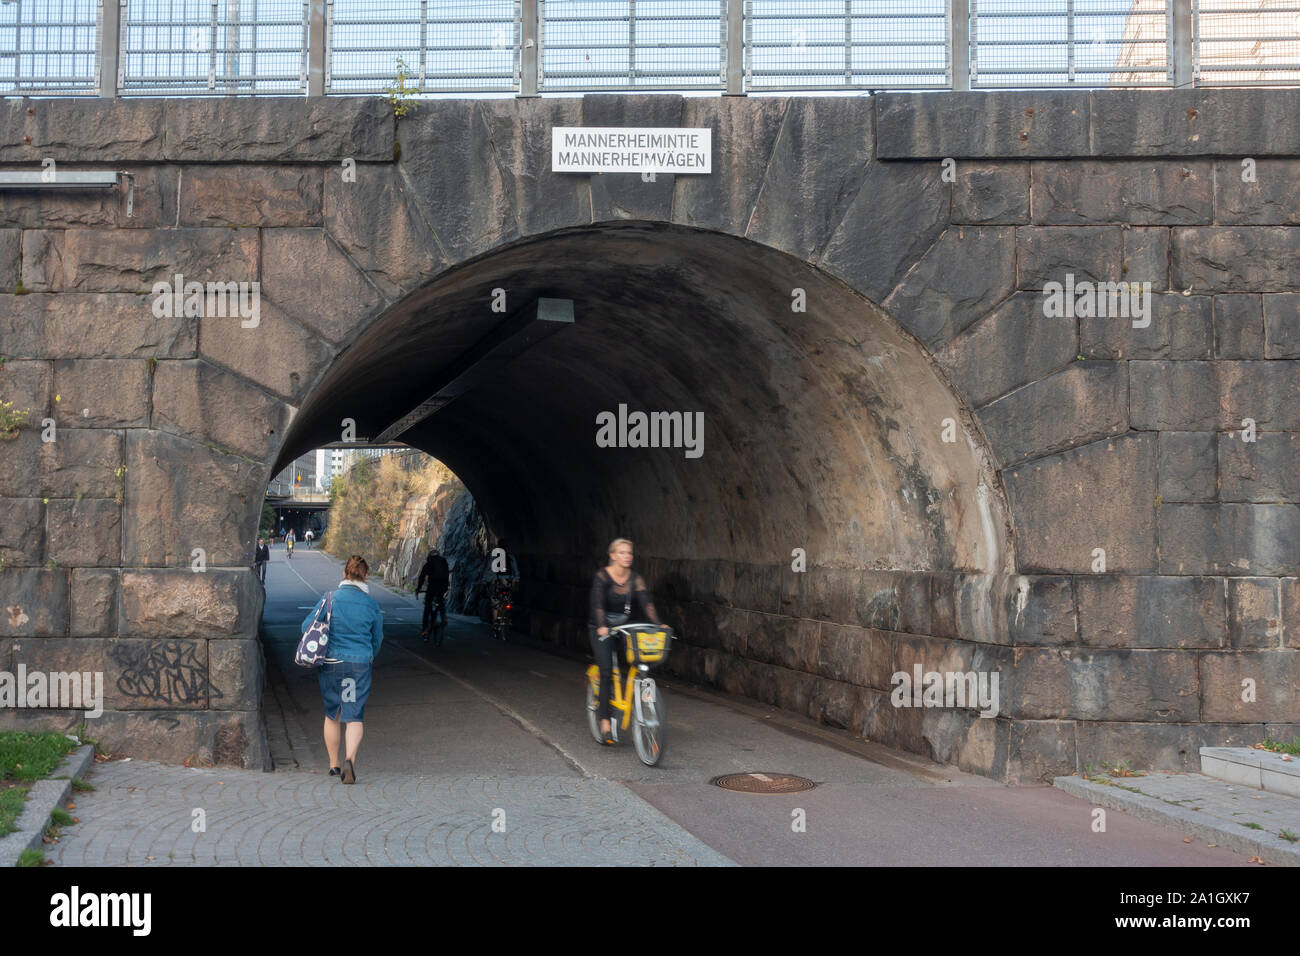 Baana is a road for bicyclists and other light taffic in Helsinki Finland Stock Photo